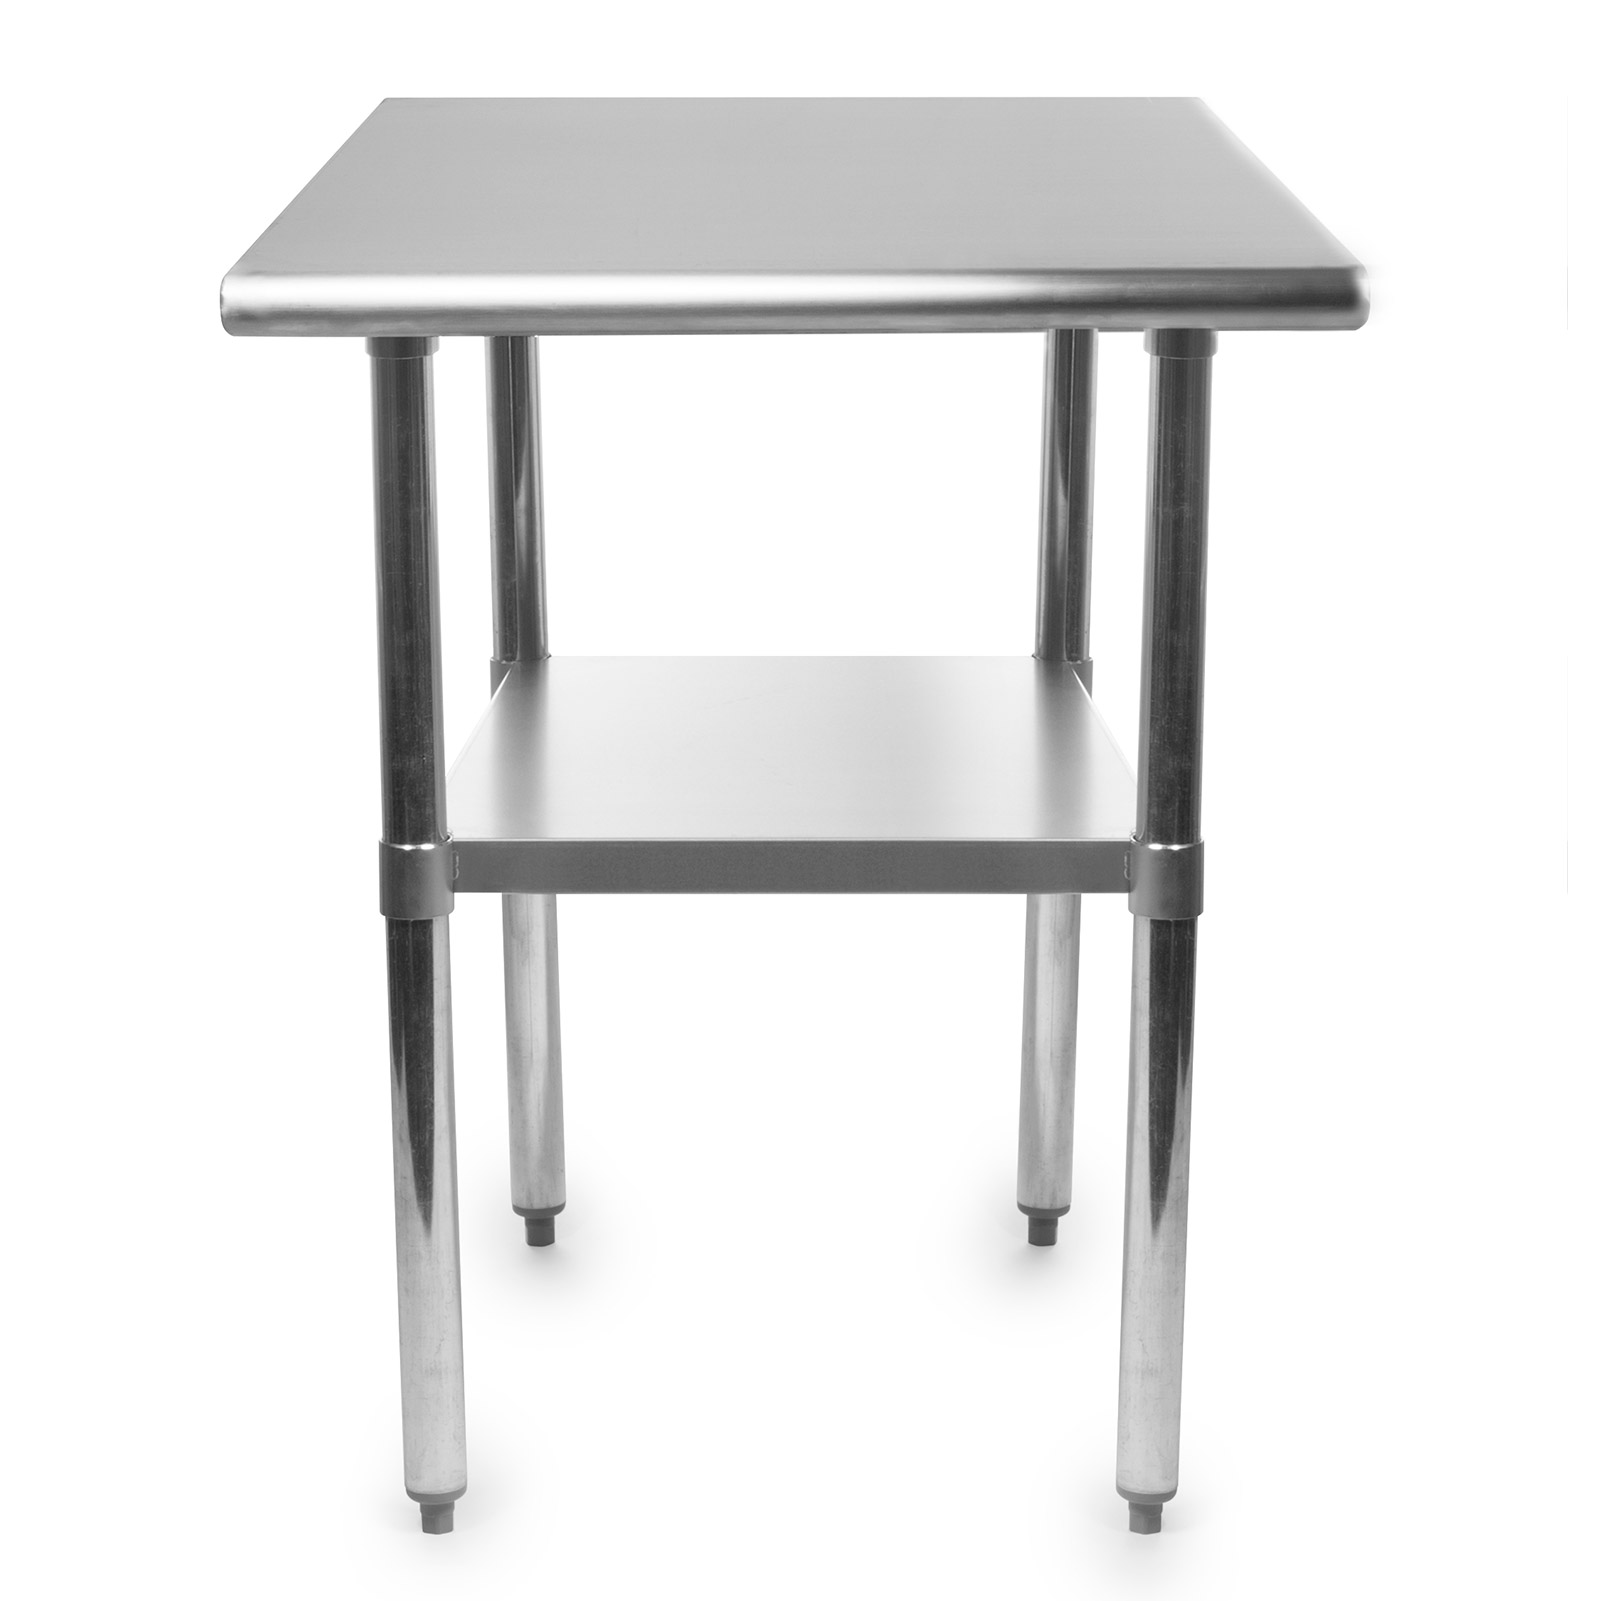 prep tables for kitchen wolf ranges stainless steel commercial work food table